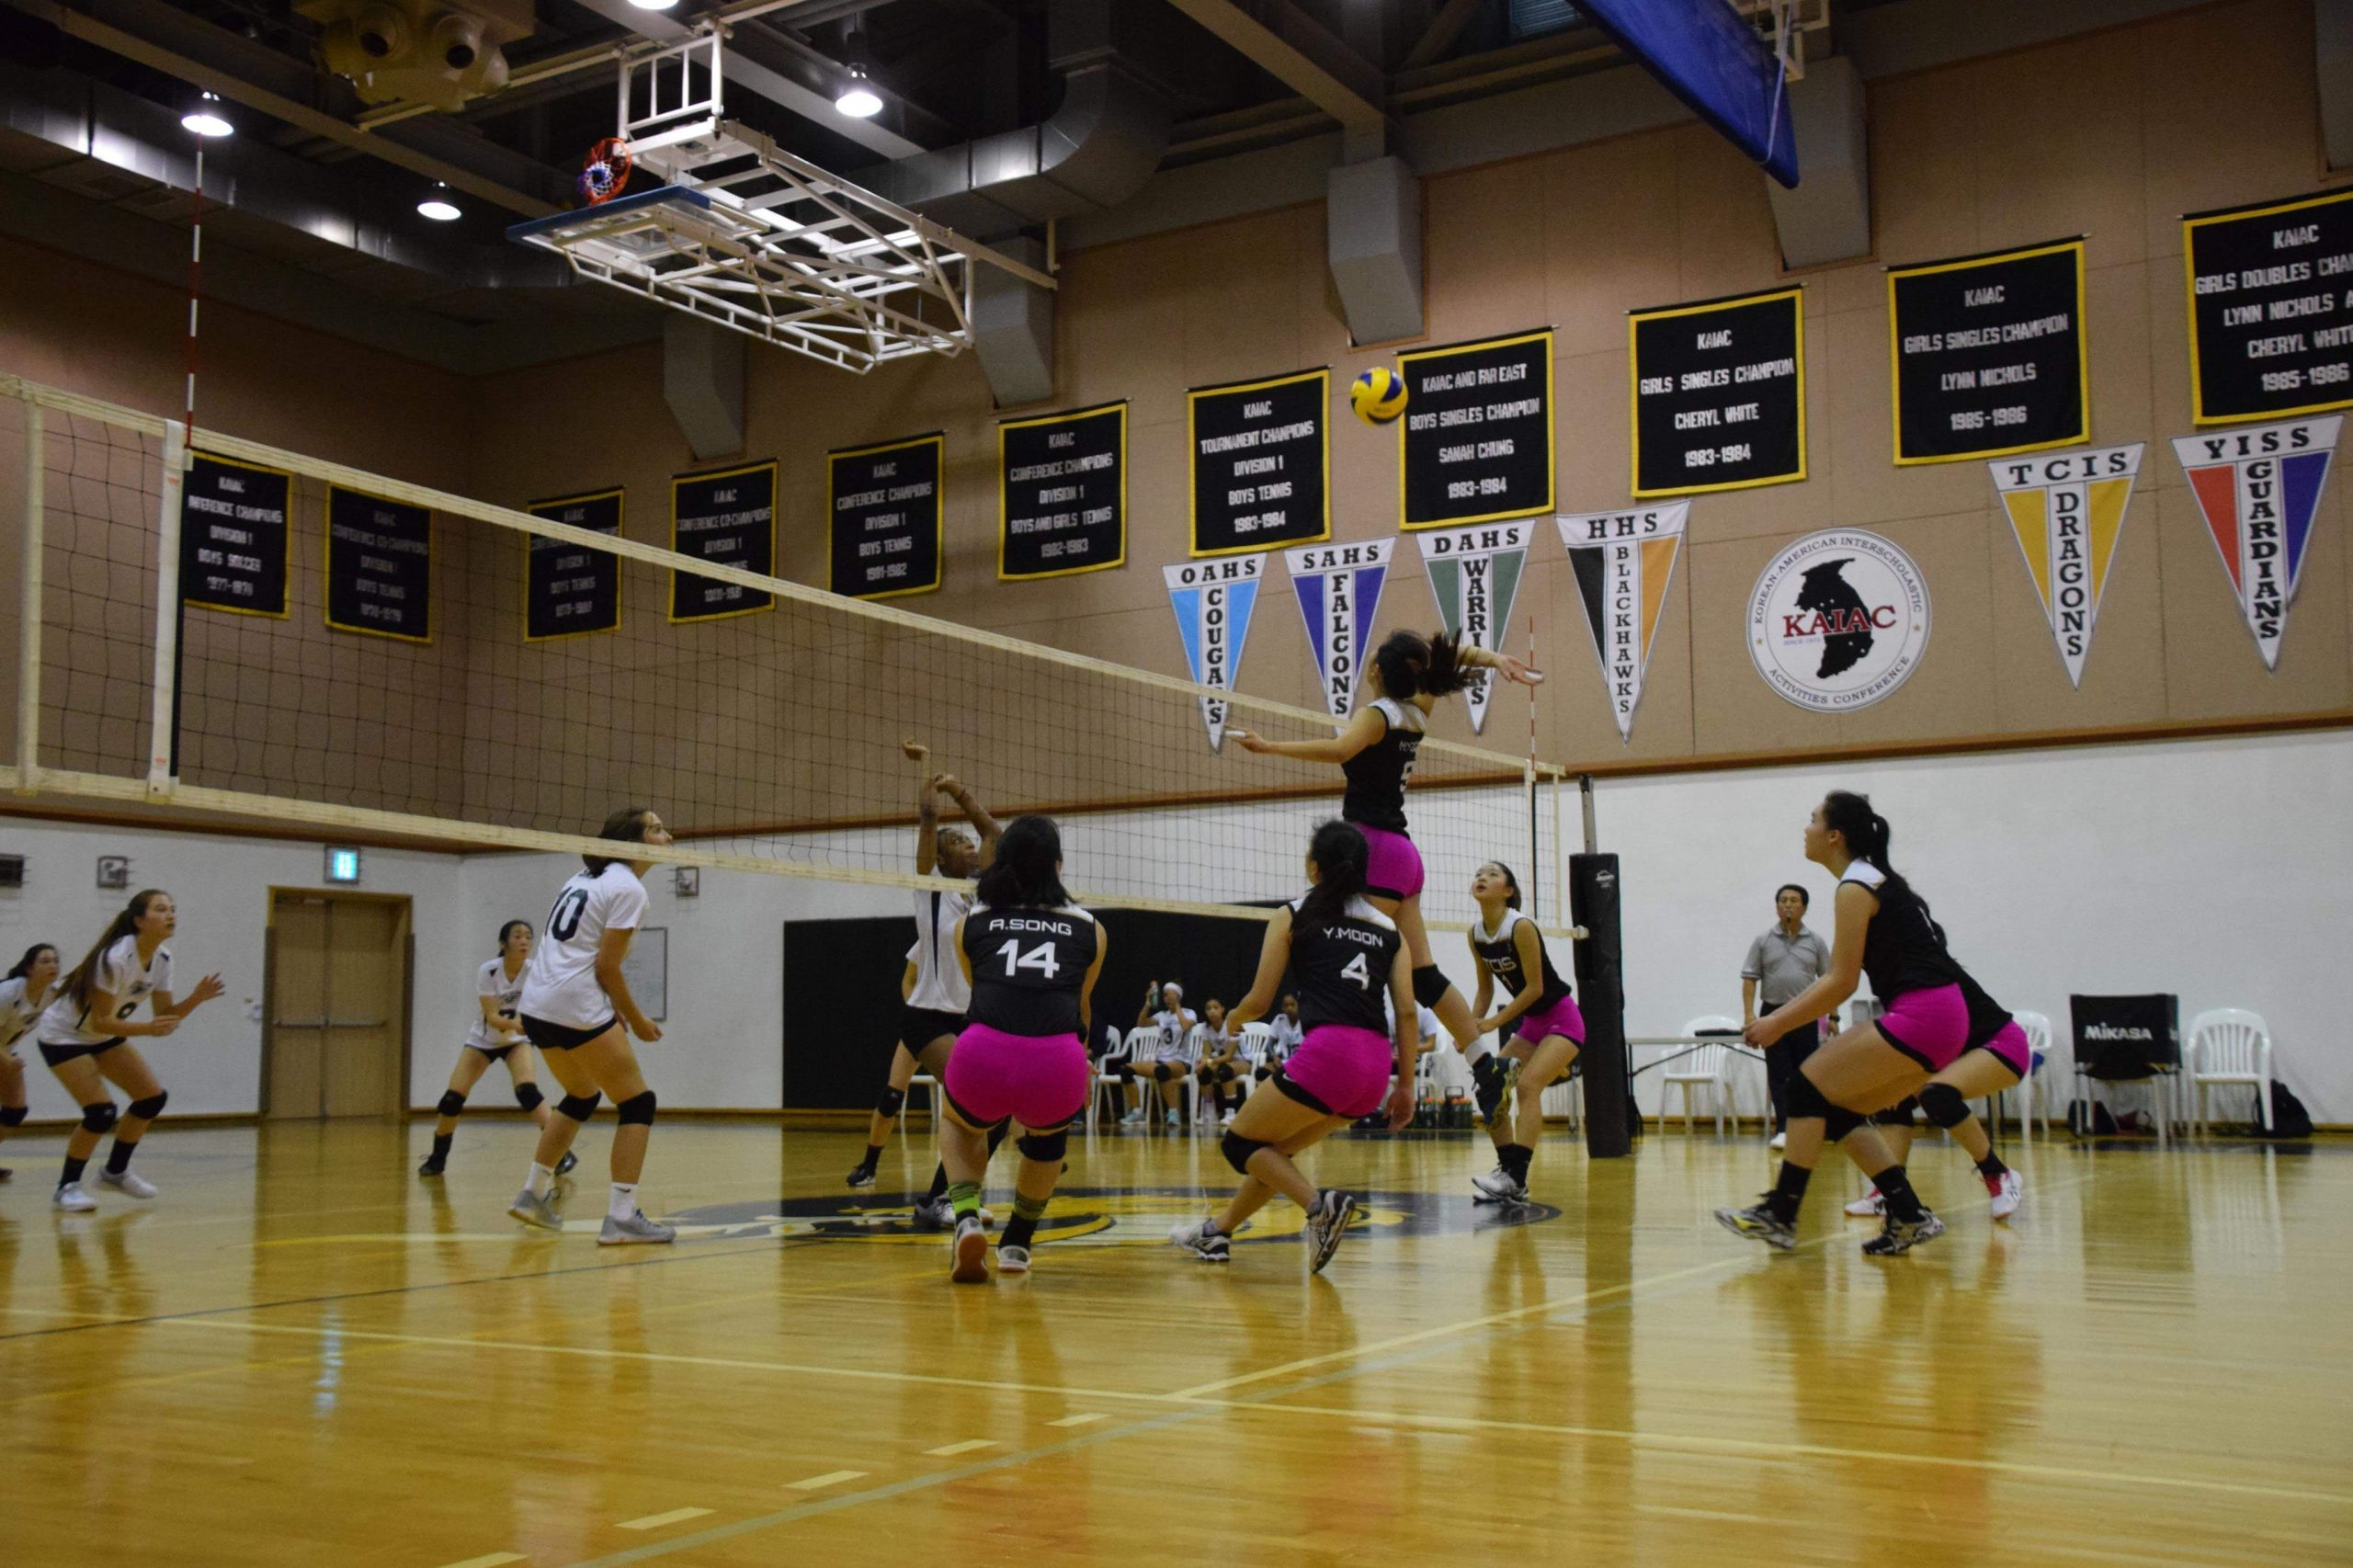 Libby's team playing on Dig Pink night.